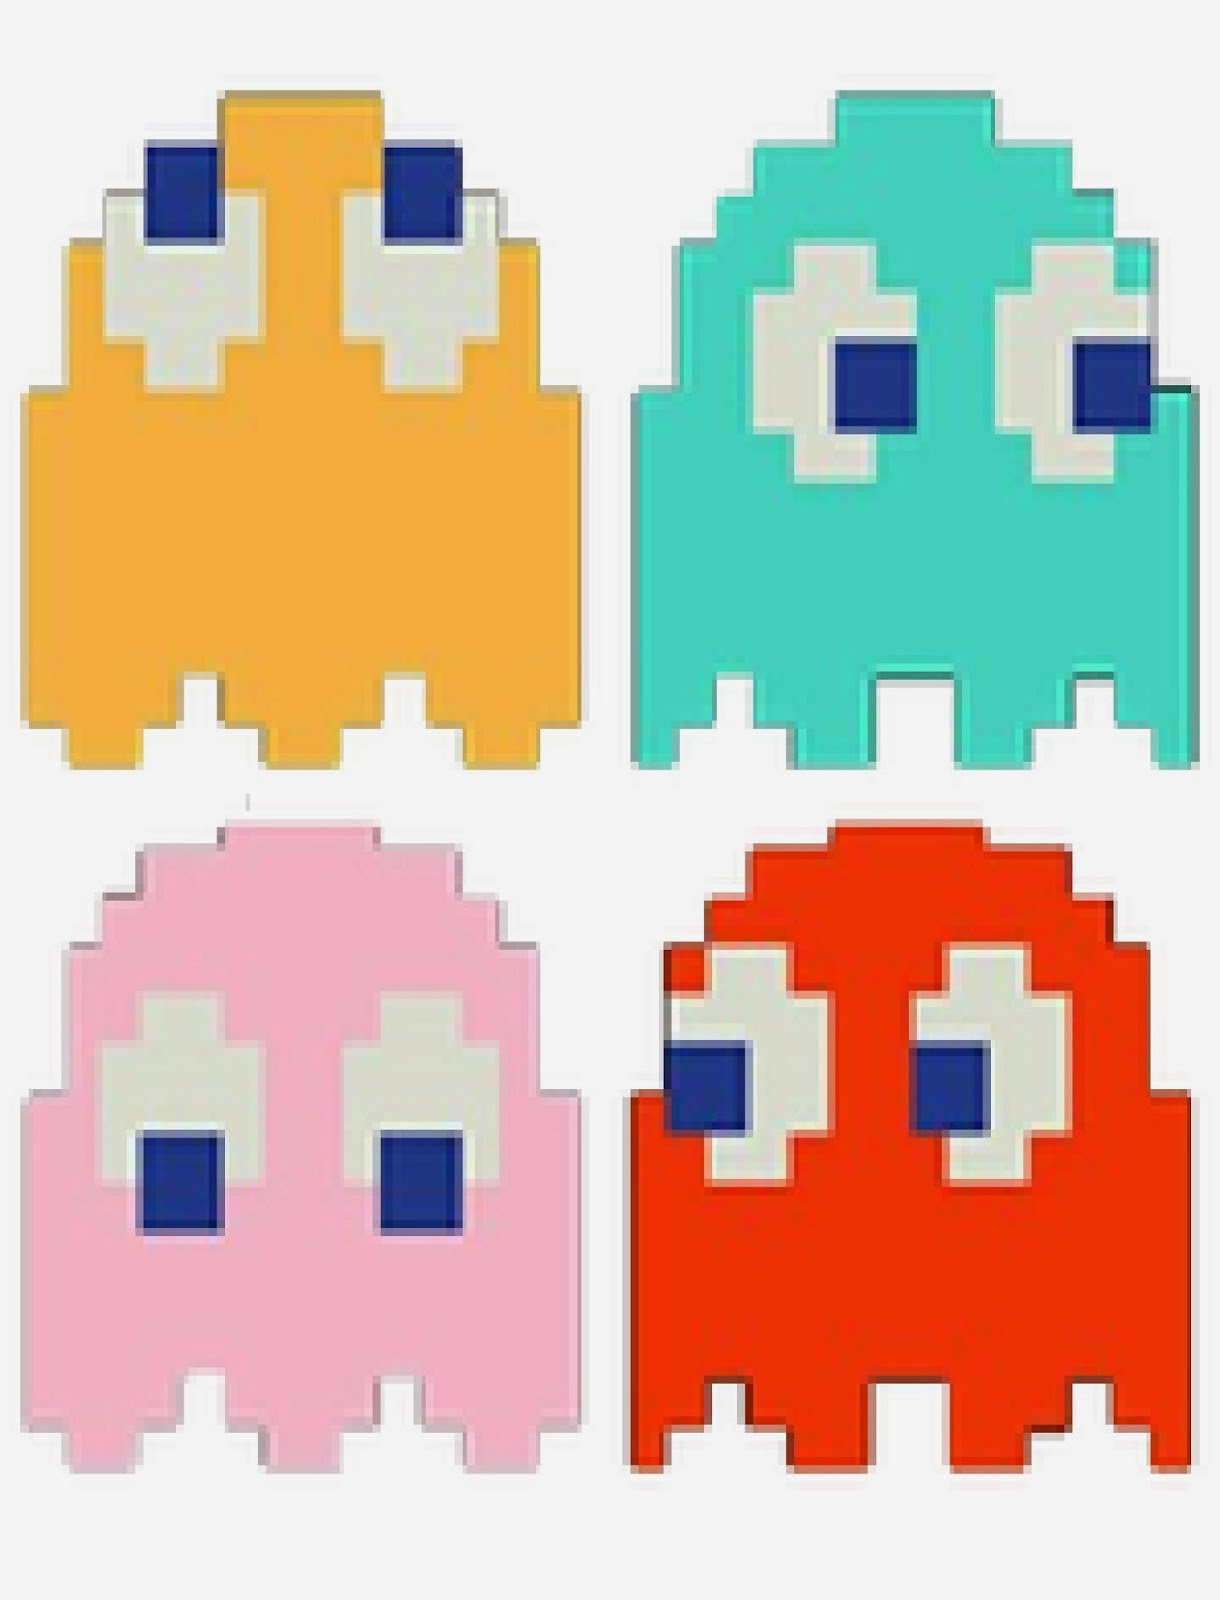 pac man ghosts images reverse search